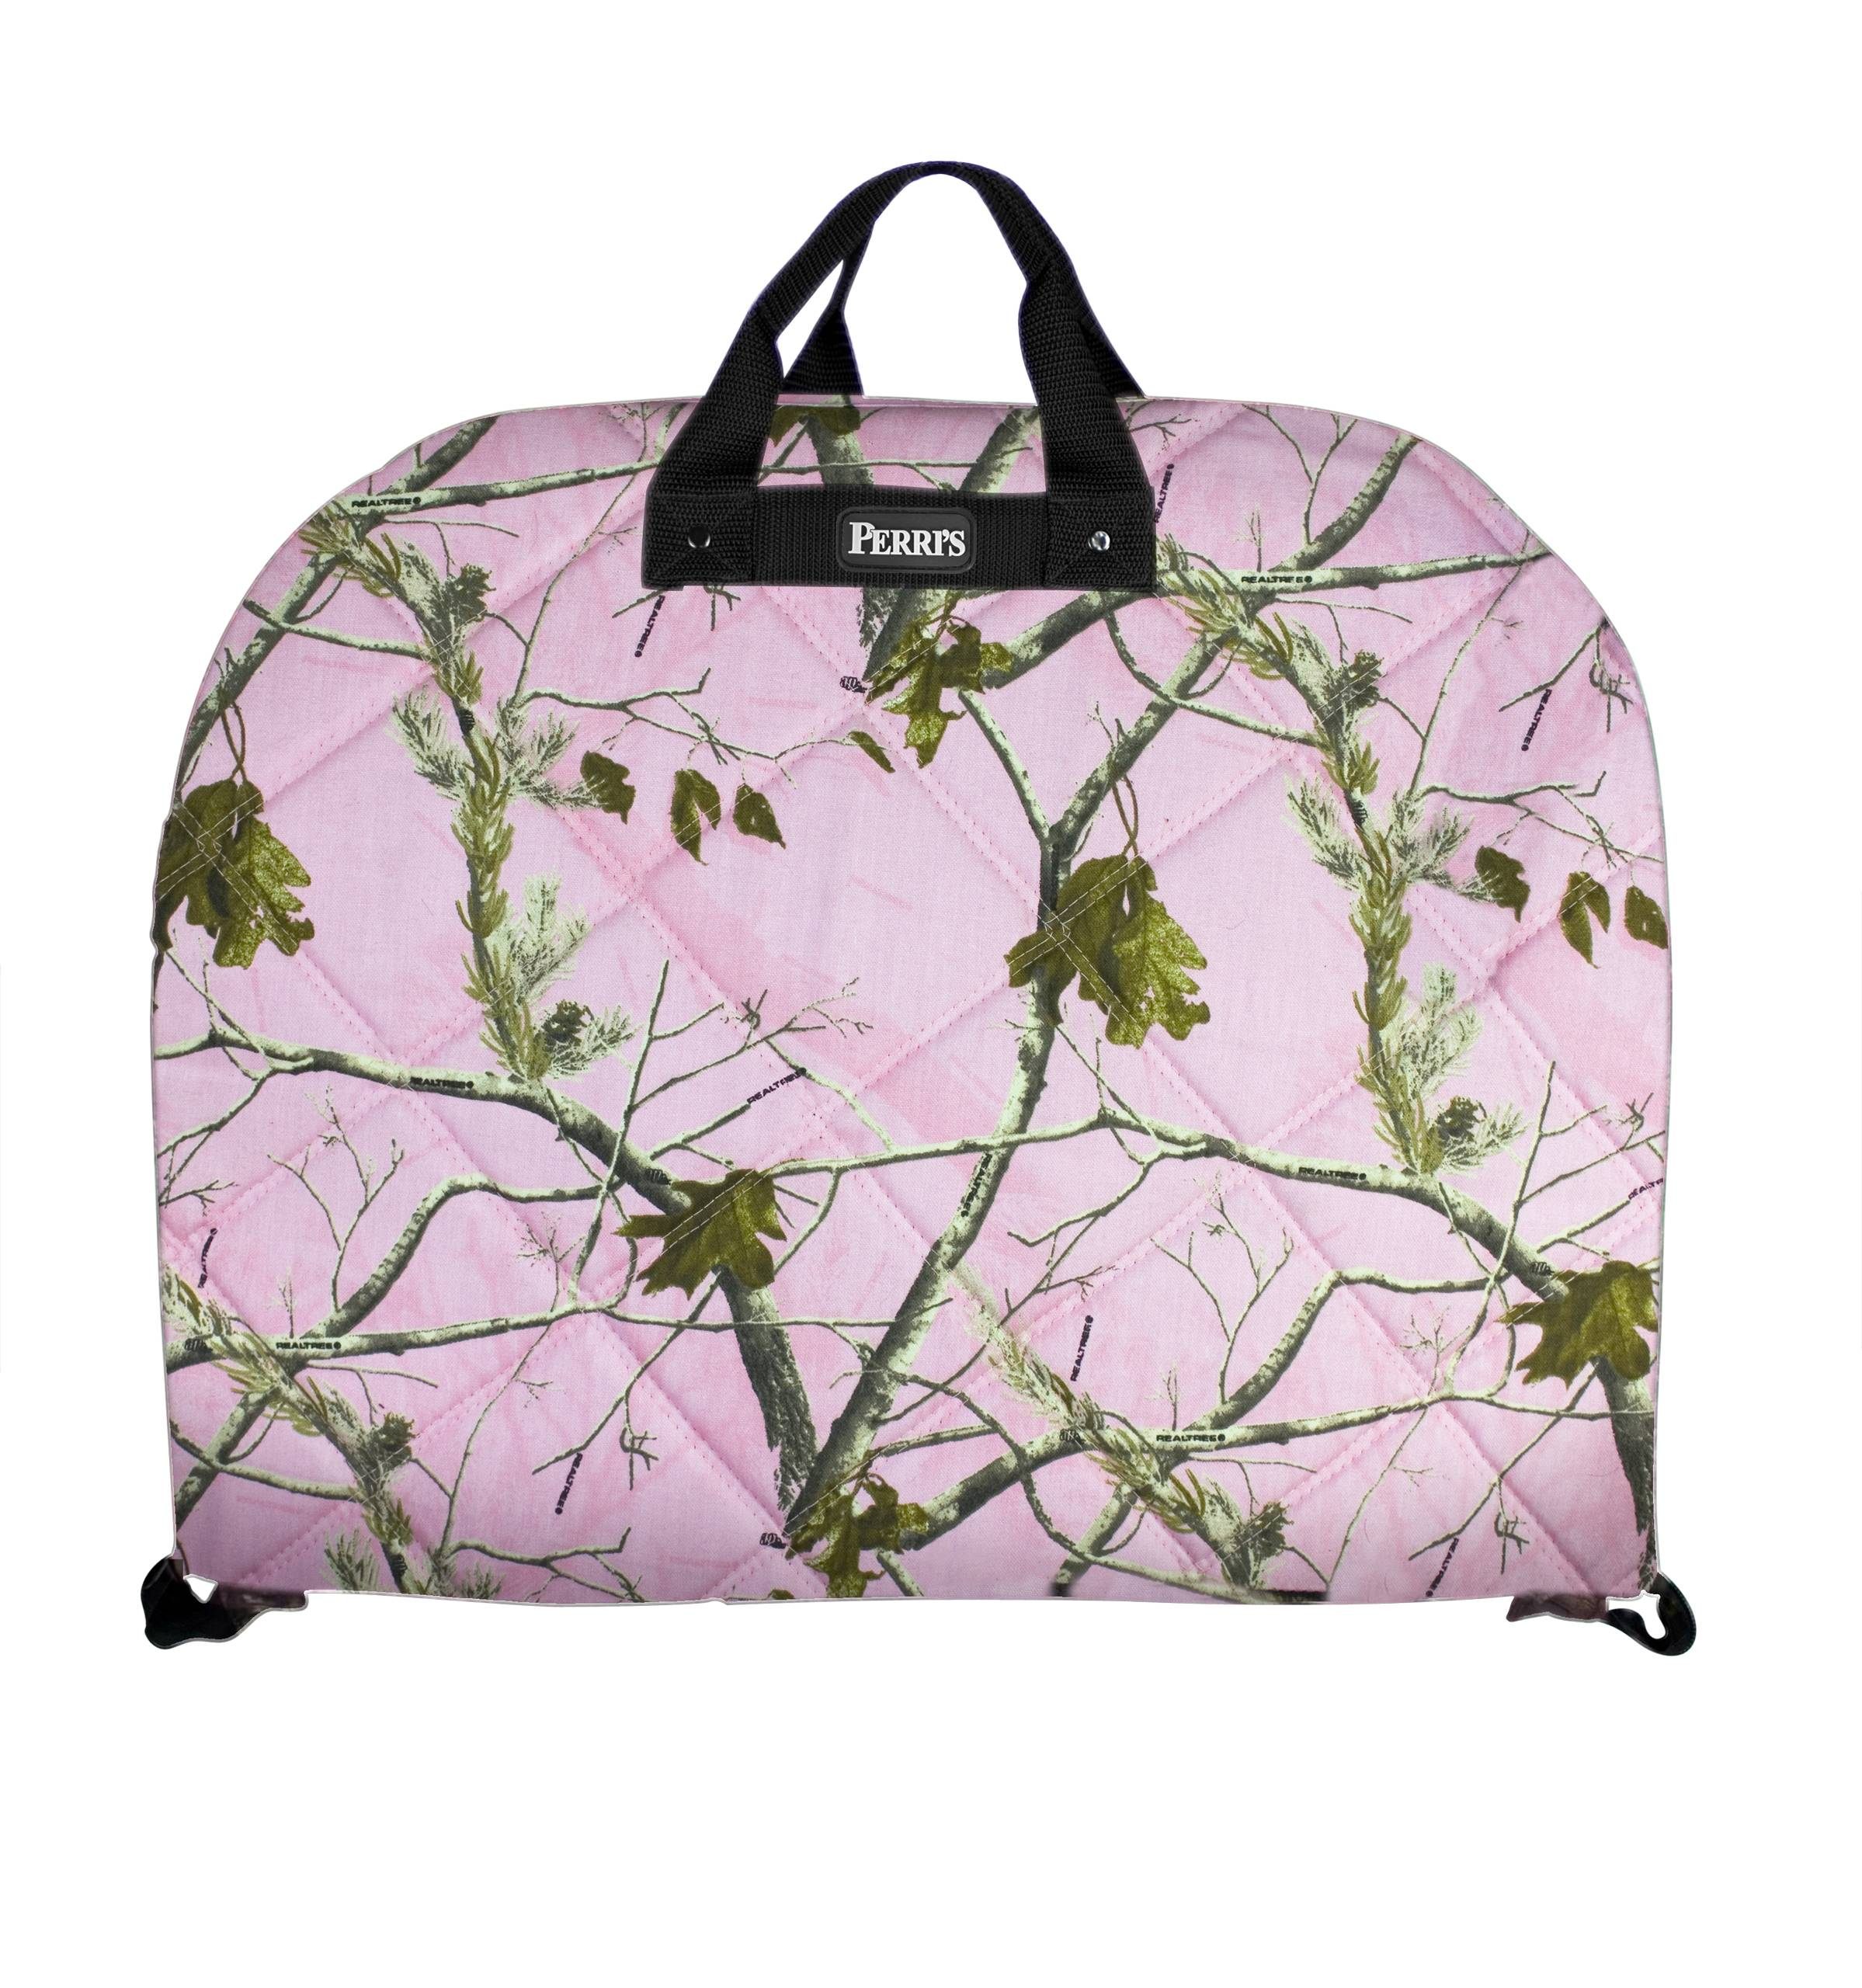 Real Tree Premium Garmet Bag